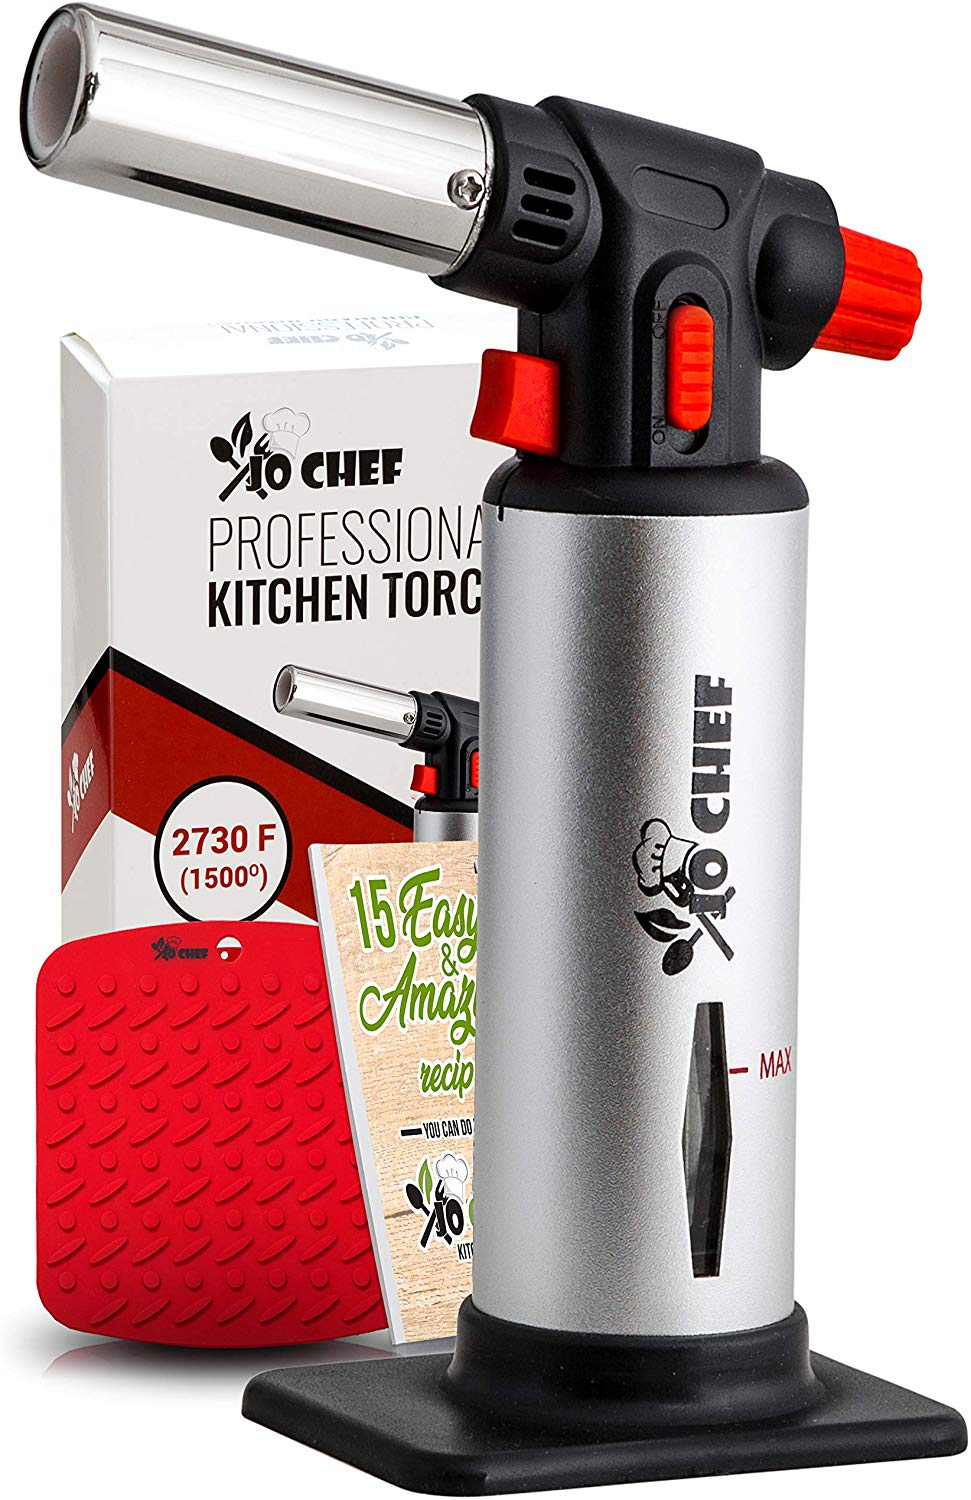 Jo chef professional culinary torch